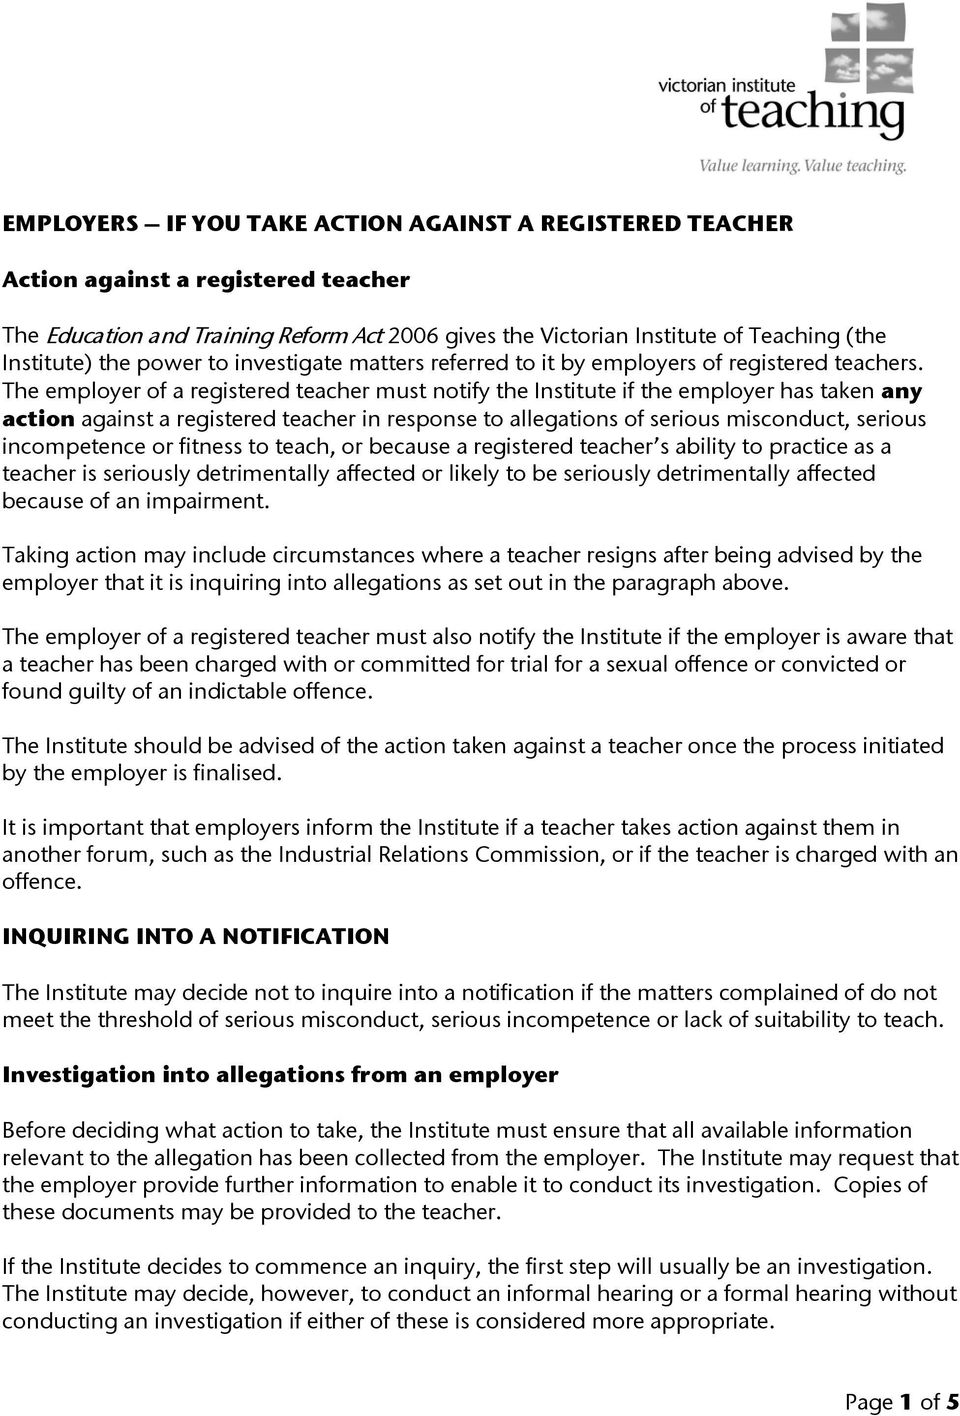 The employer of a registered teacher must notify the Institute if the employer has taken any action against a registered teacher in response to allegations of serious misconduct, serious incompetence